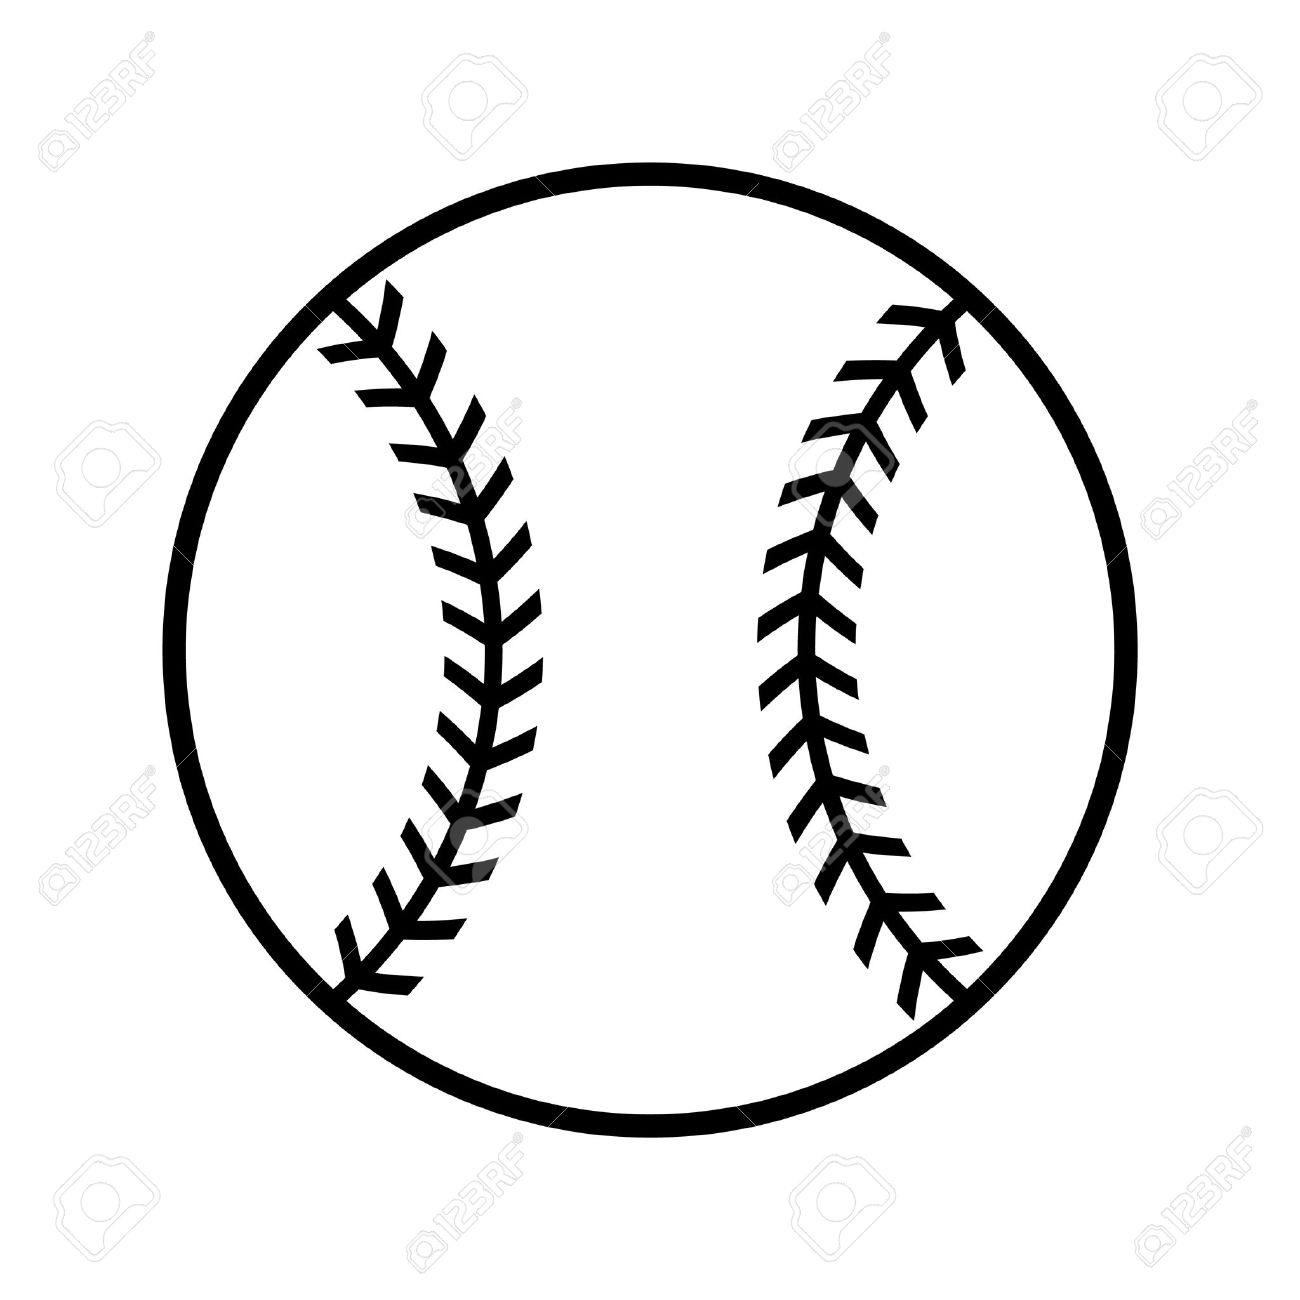 baseball vector icon royalty free cliparts vectors and stock rh 123rf com baseball vector art baseball vector art